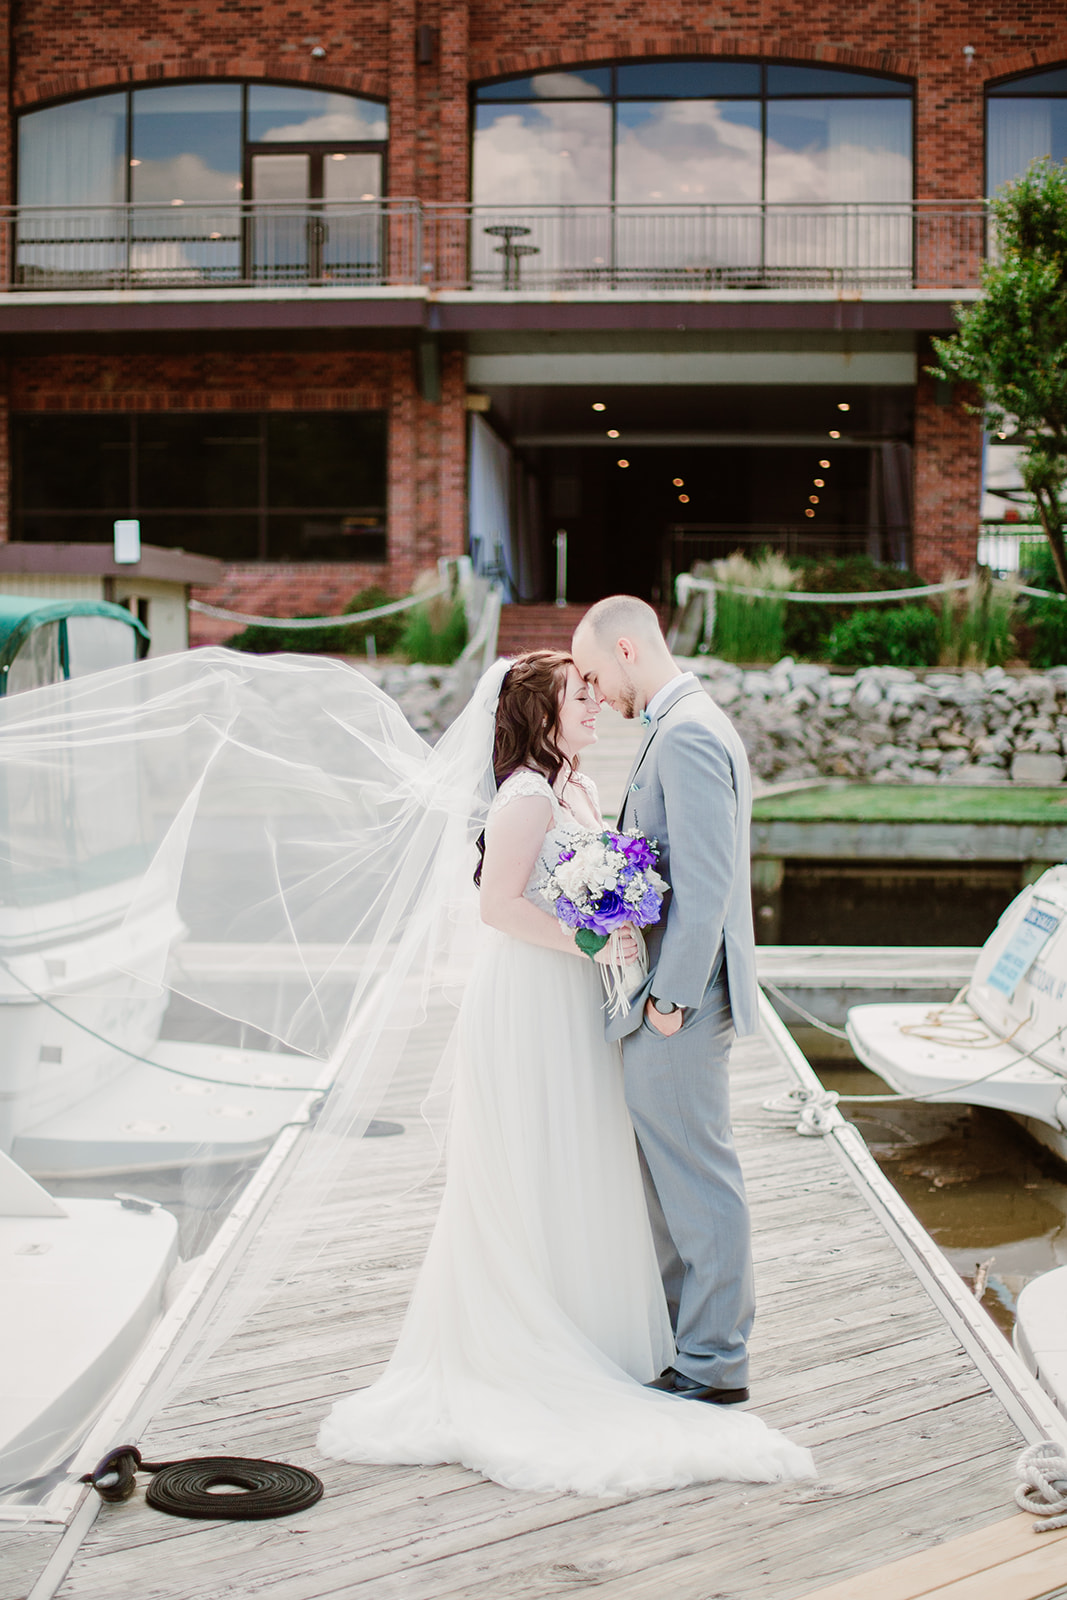 SarahMattozziPhotography-HarbourViewEvents-FirstLookPortraits-15.jpg